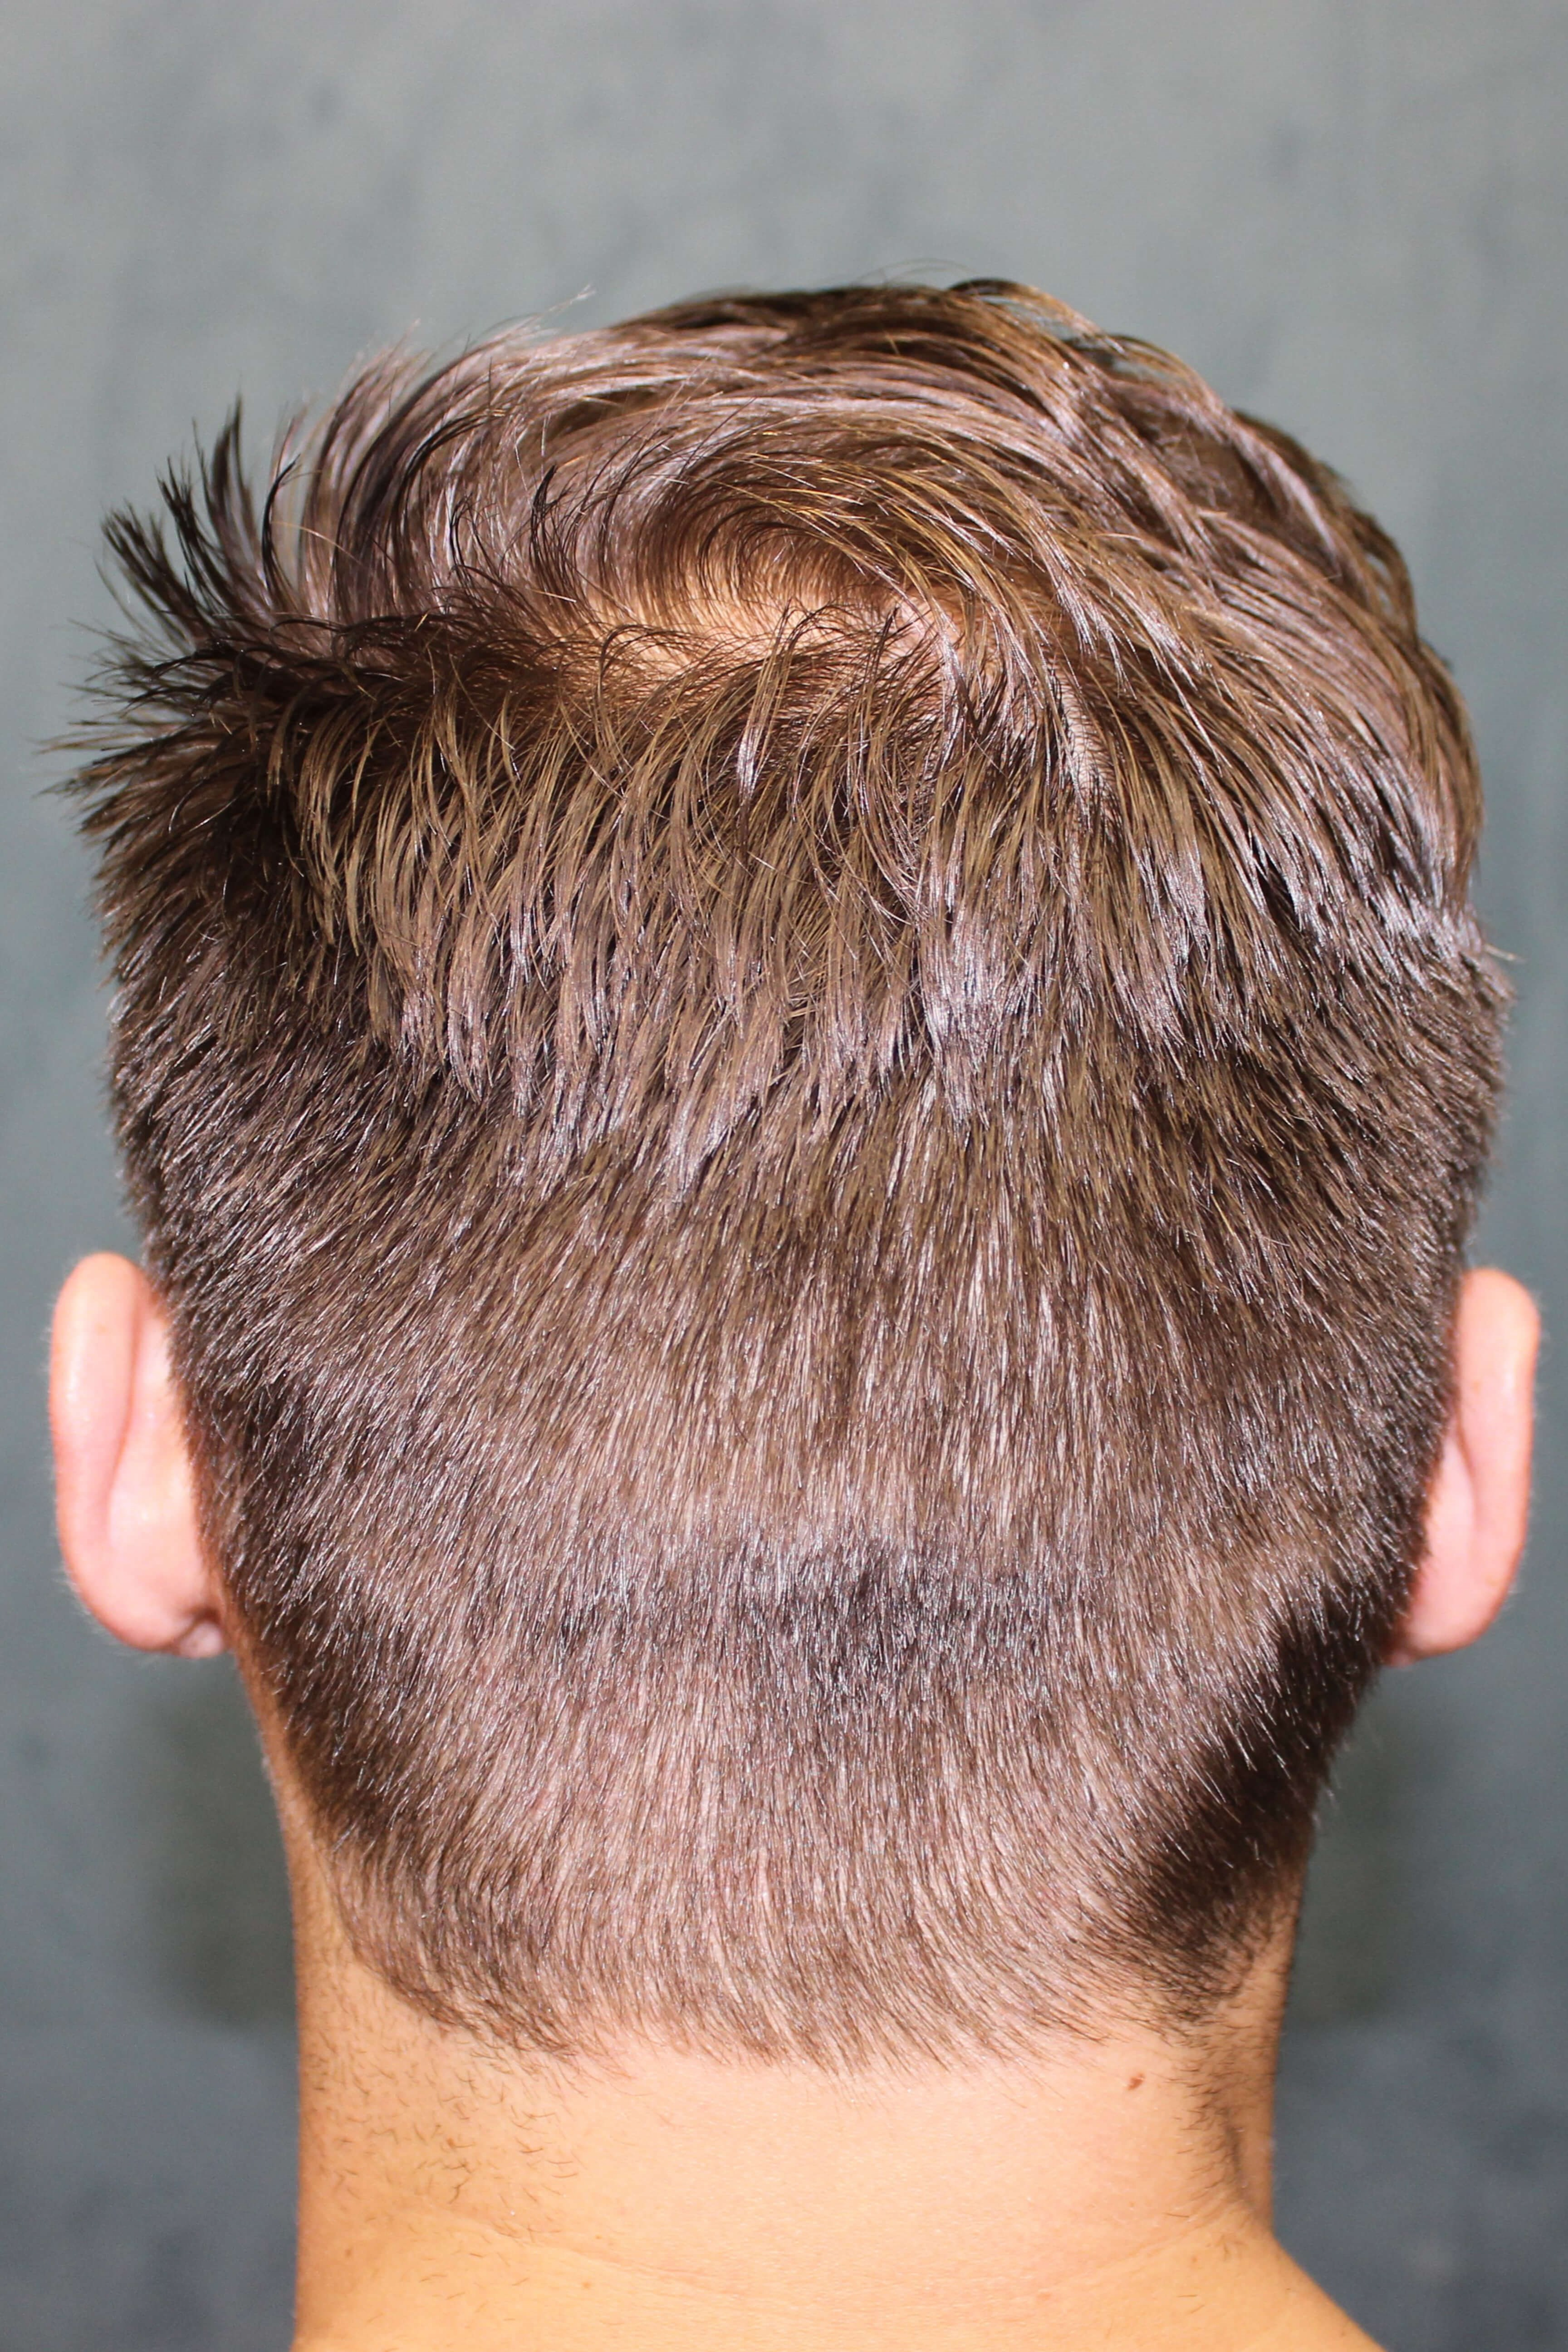 Hair Restoration Surgery After